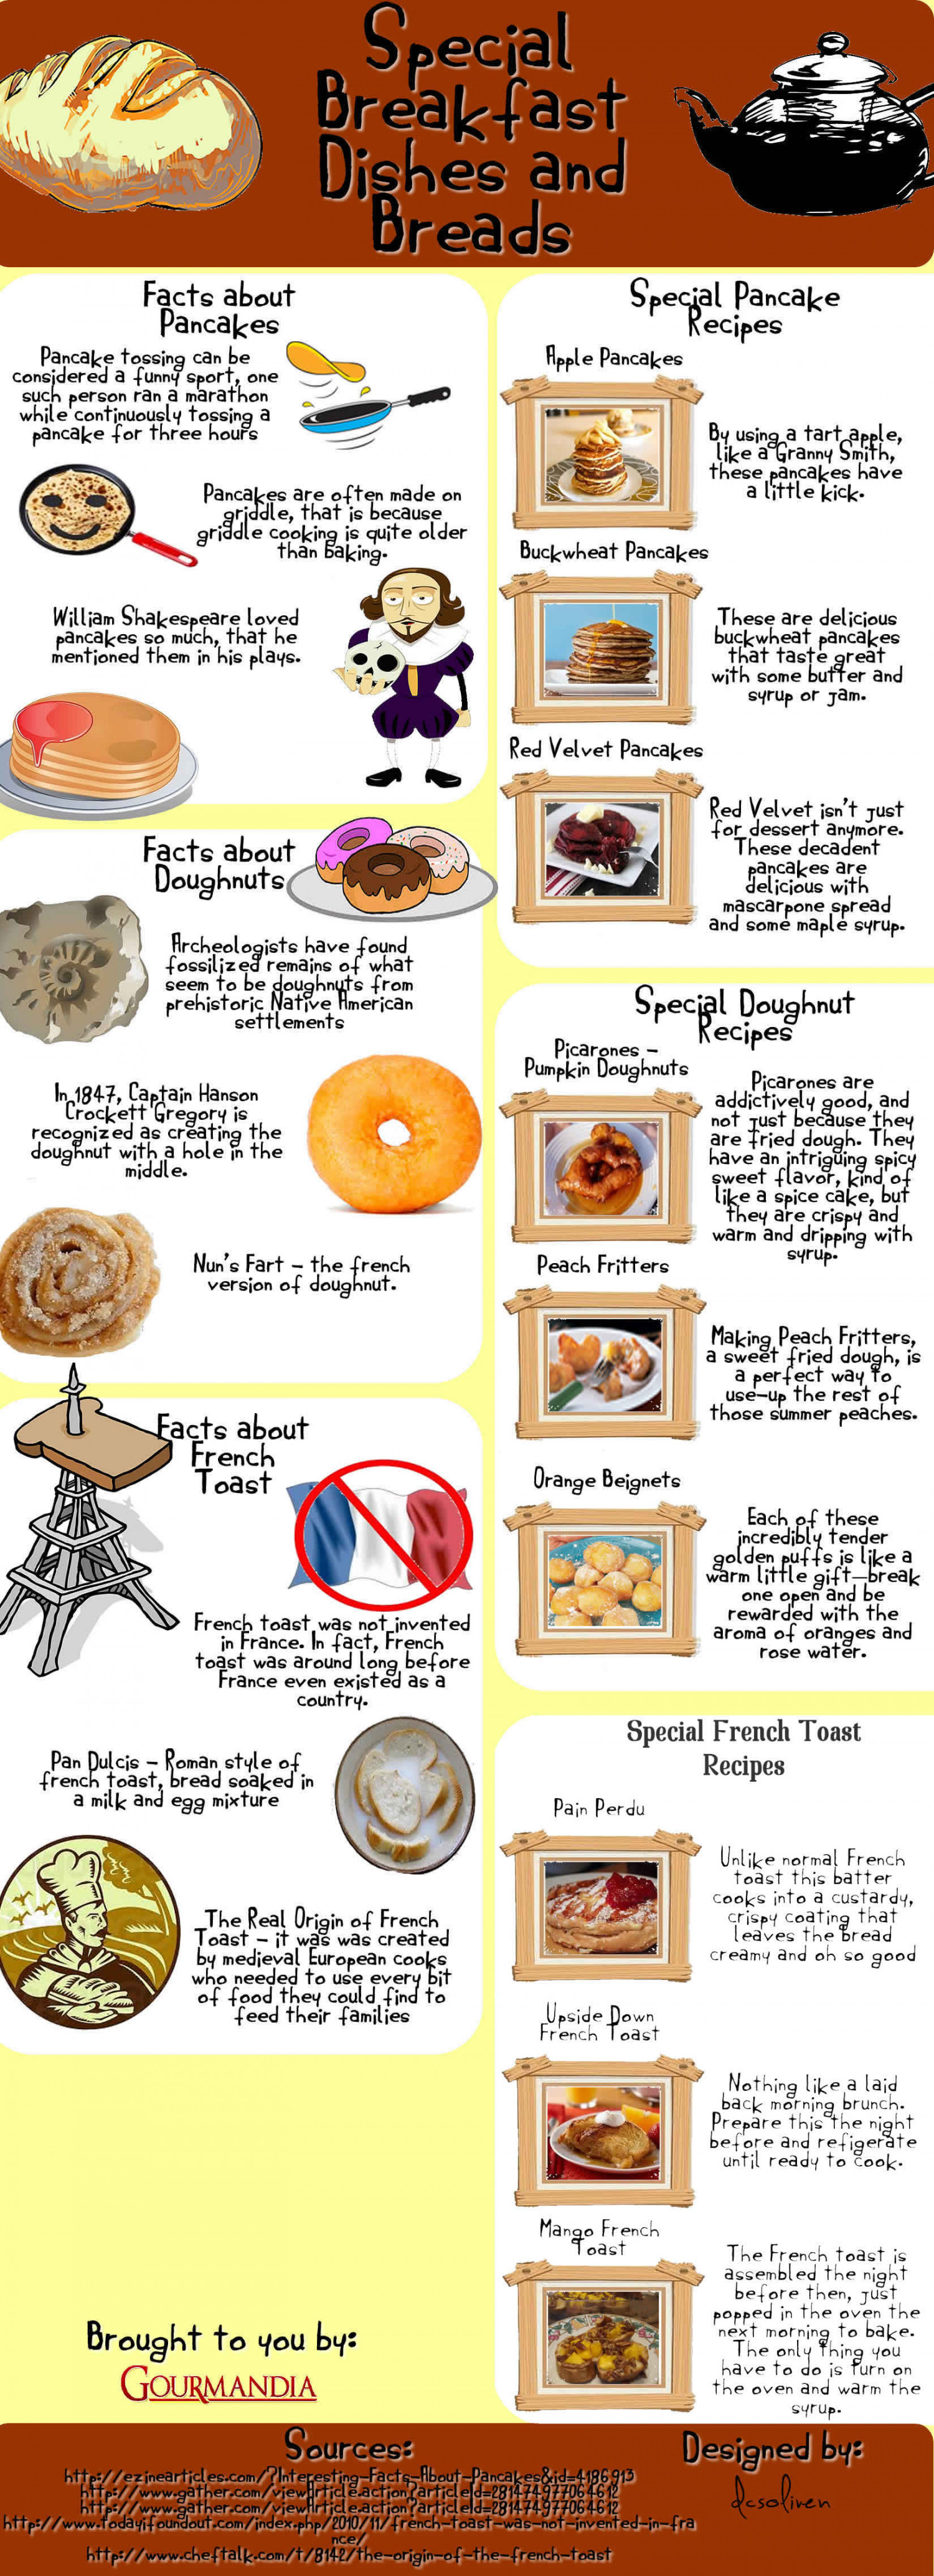 Special Breakfast Dishes and Desserts Infographic